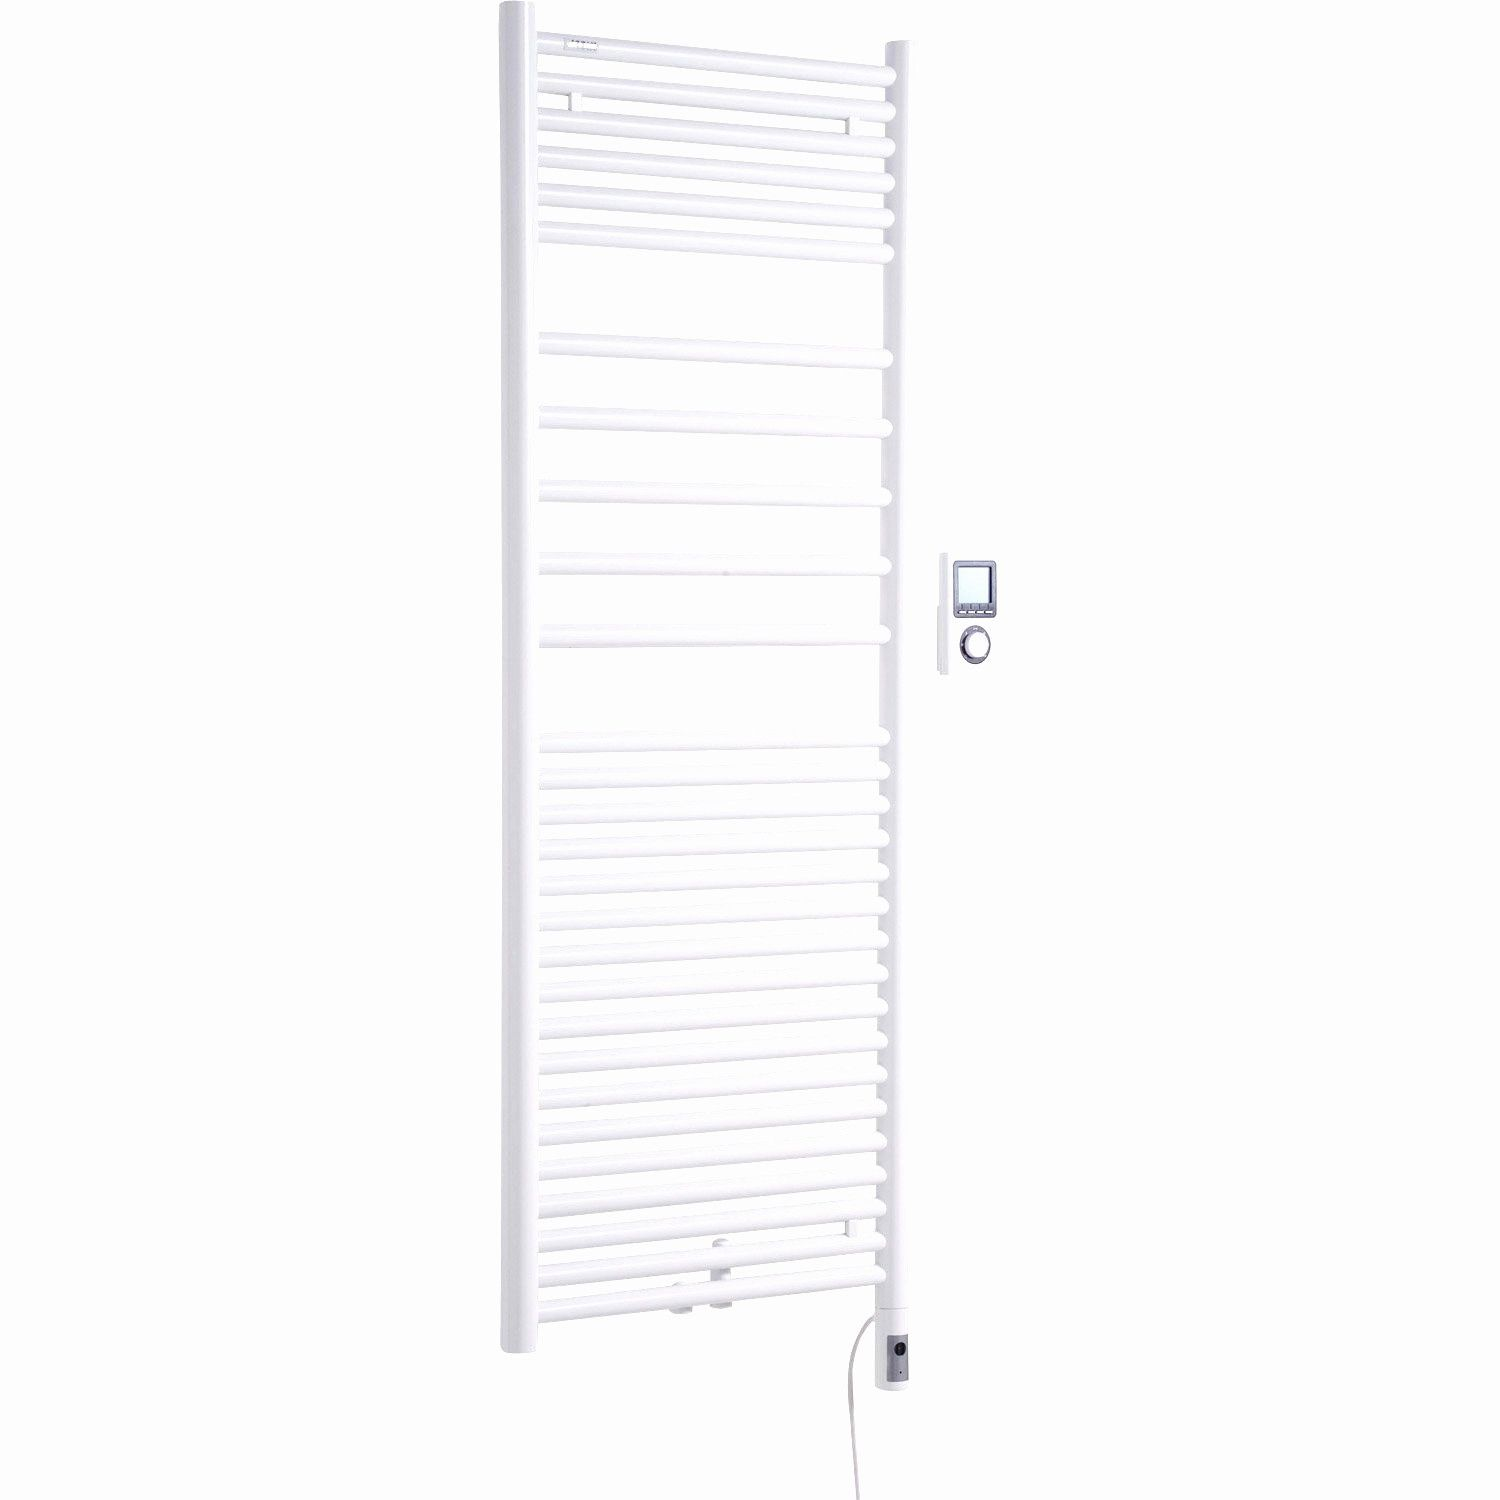 Elegant Radiateur Castorama Inertie Bathroom Heater Tall Cabinet Storage Bathroom Radiators